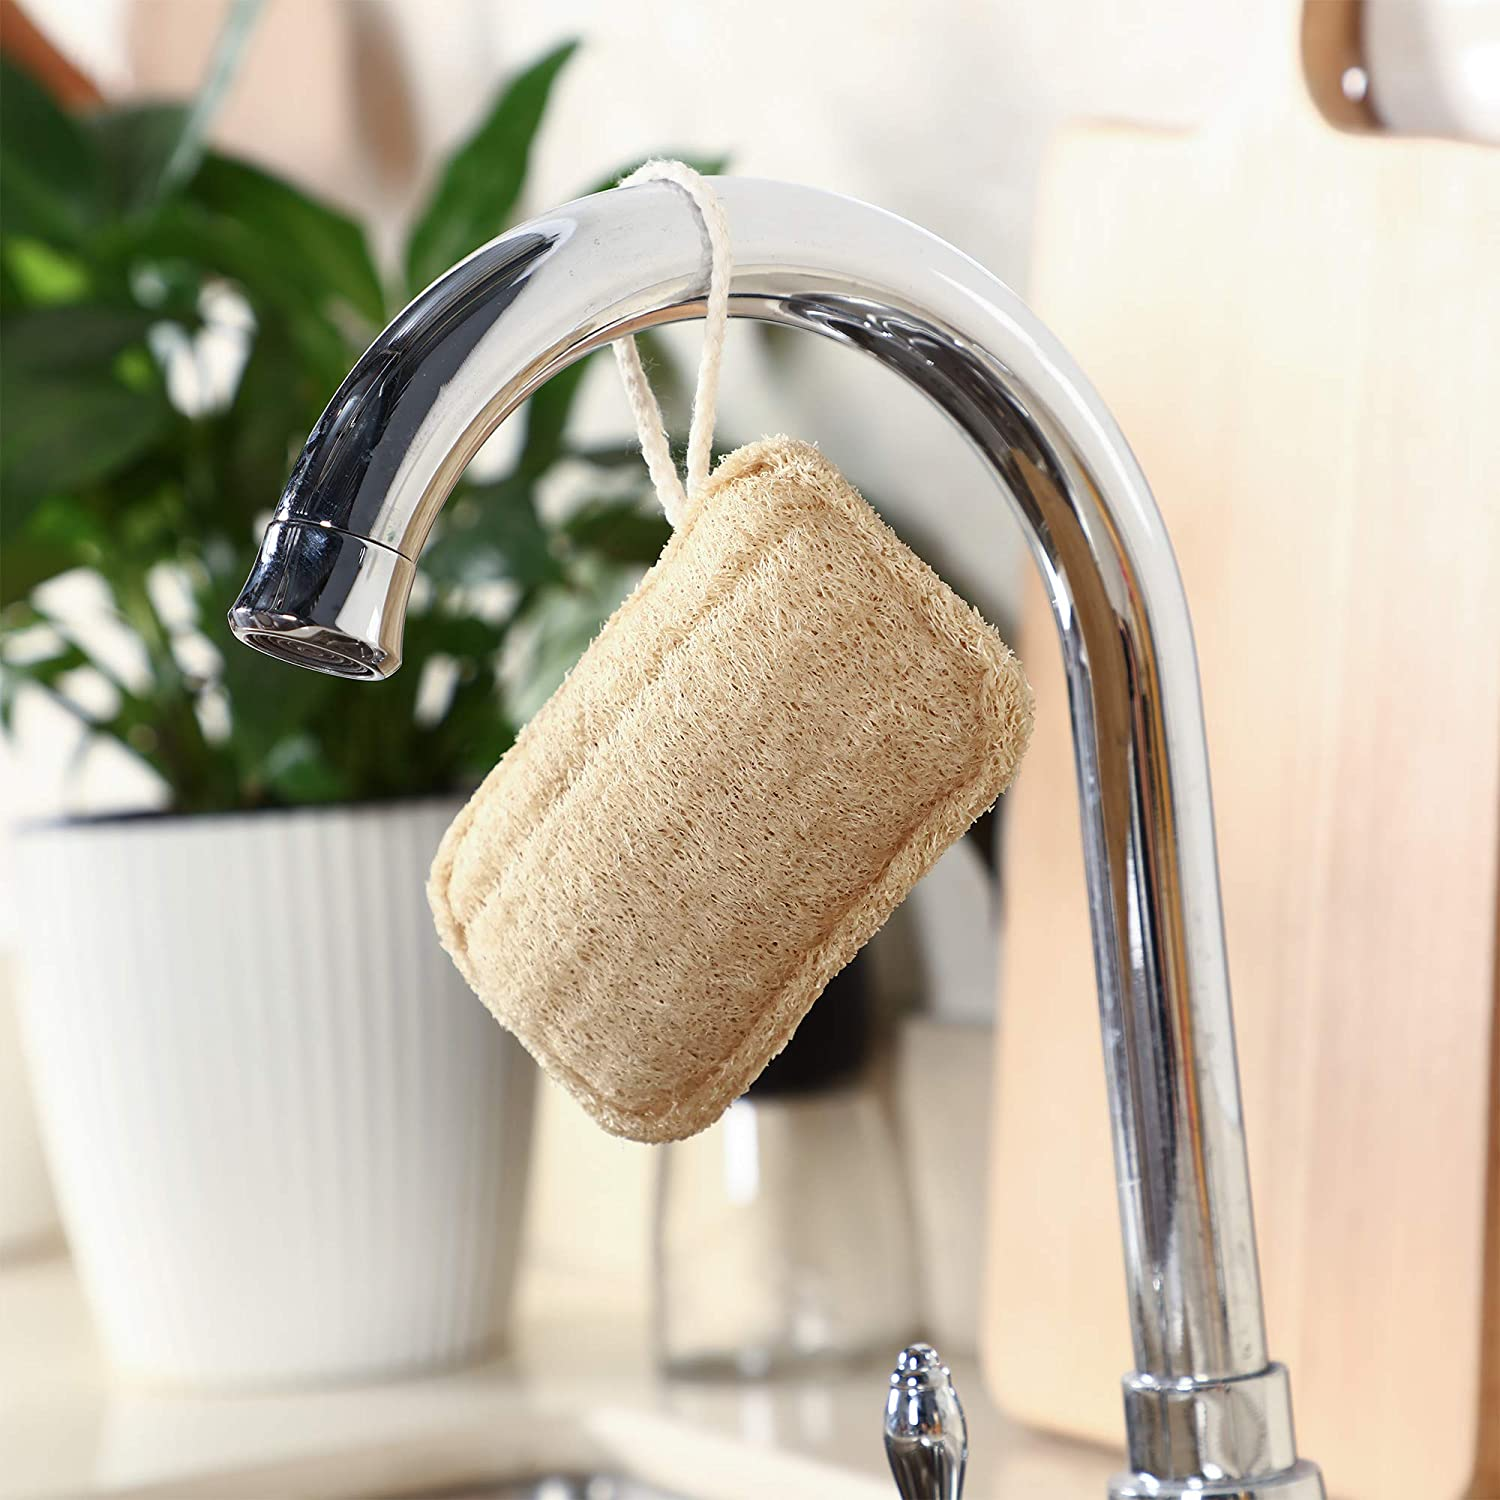 Natural Loofa Kitchen Scrubber - 4 pack